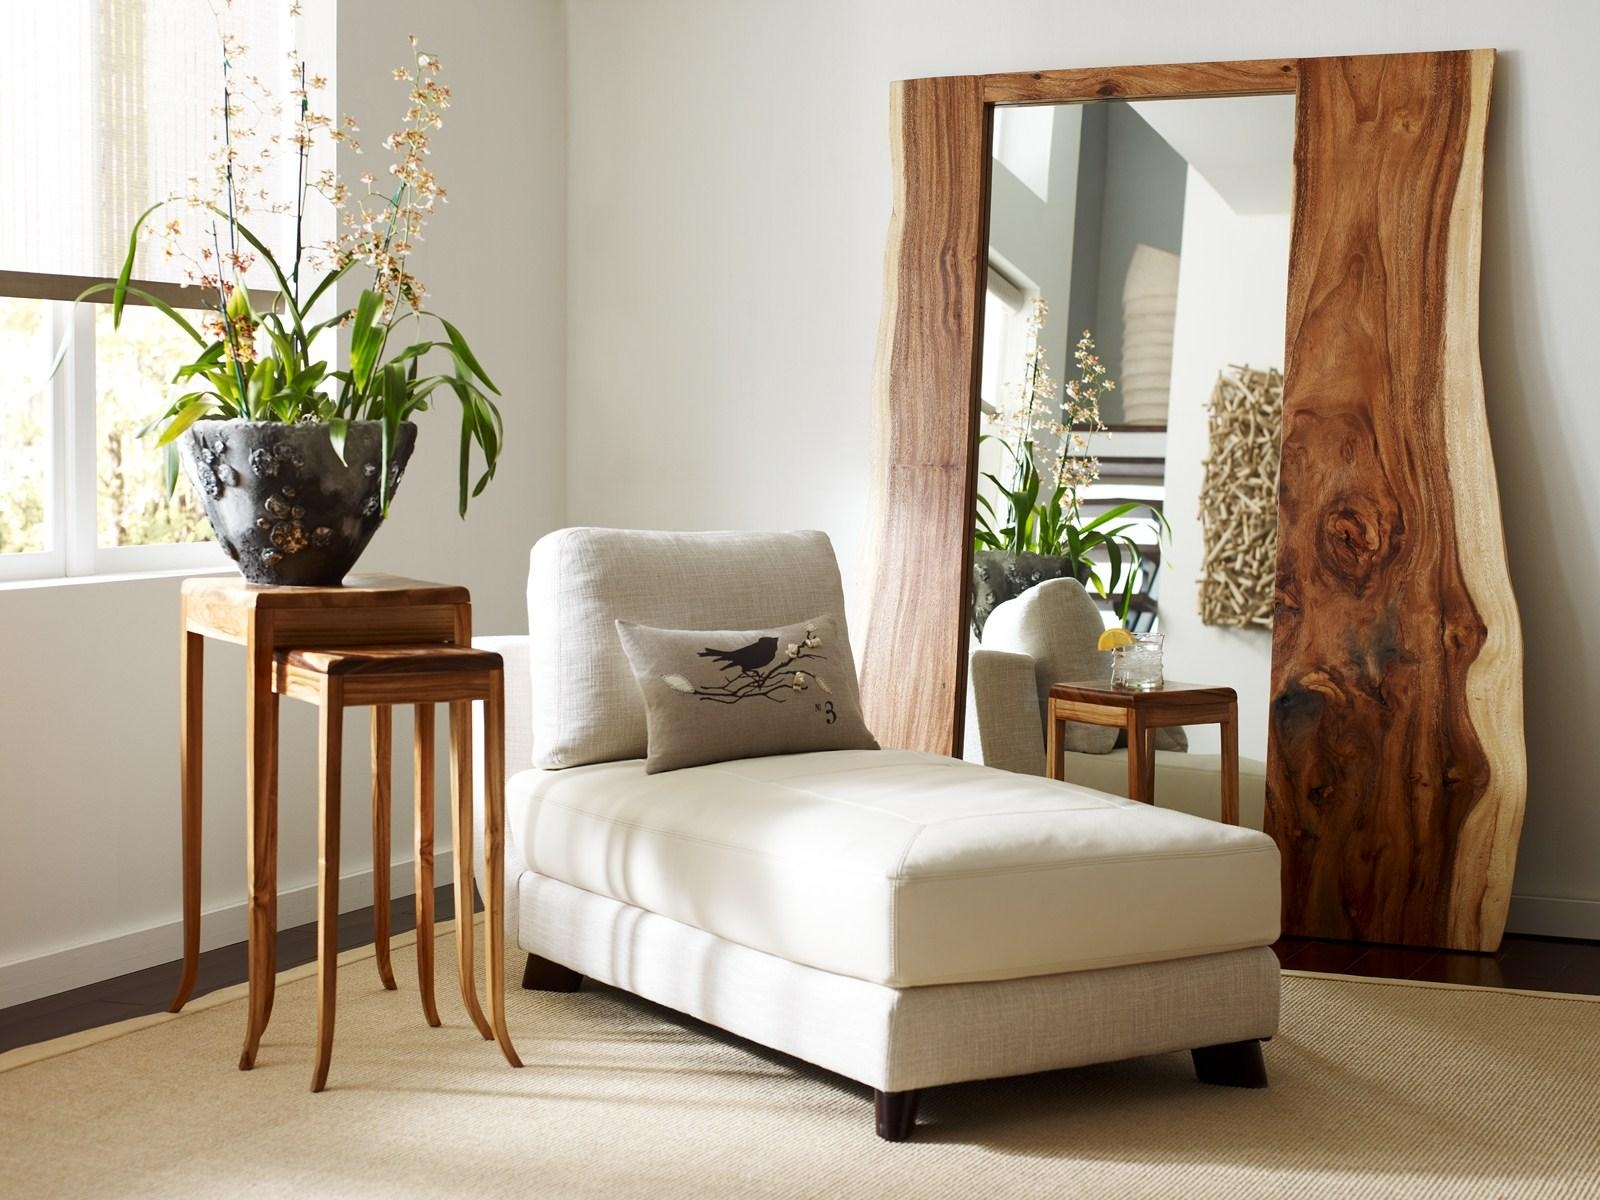 High Stand Mirror With Natural Brown Wooden Frame Placed On The Throughout Natural Wood Framed Mirrors (Image 9 of 20)